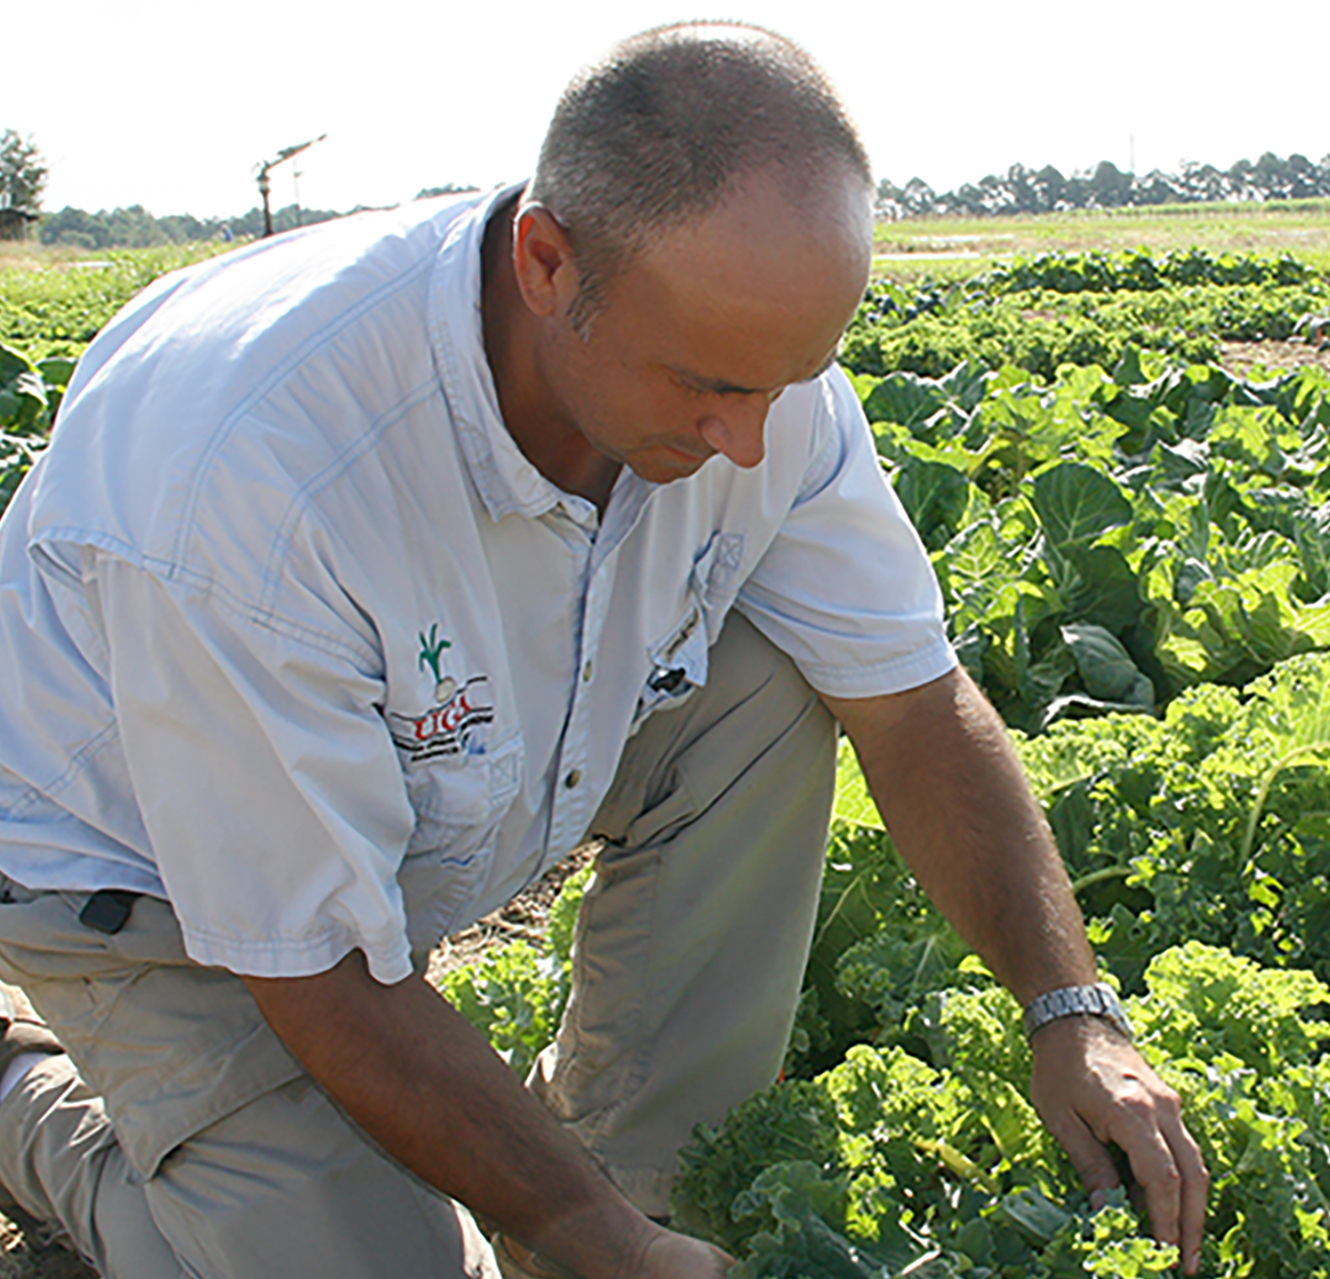 UGA horticulturist Tim Coolong is studying different varieties of kale on the UGA Tifton Campus.